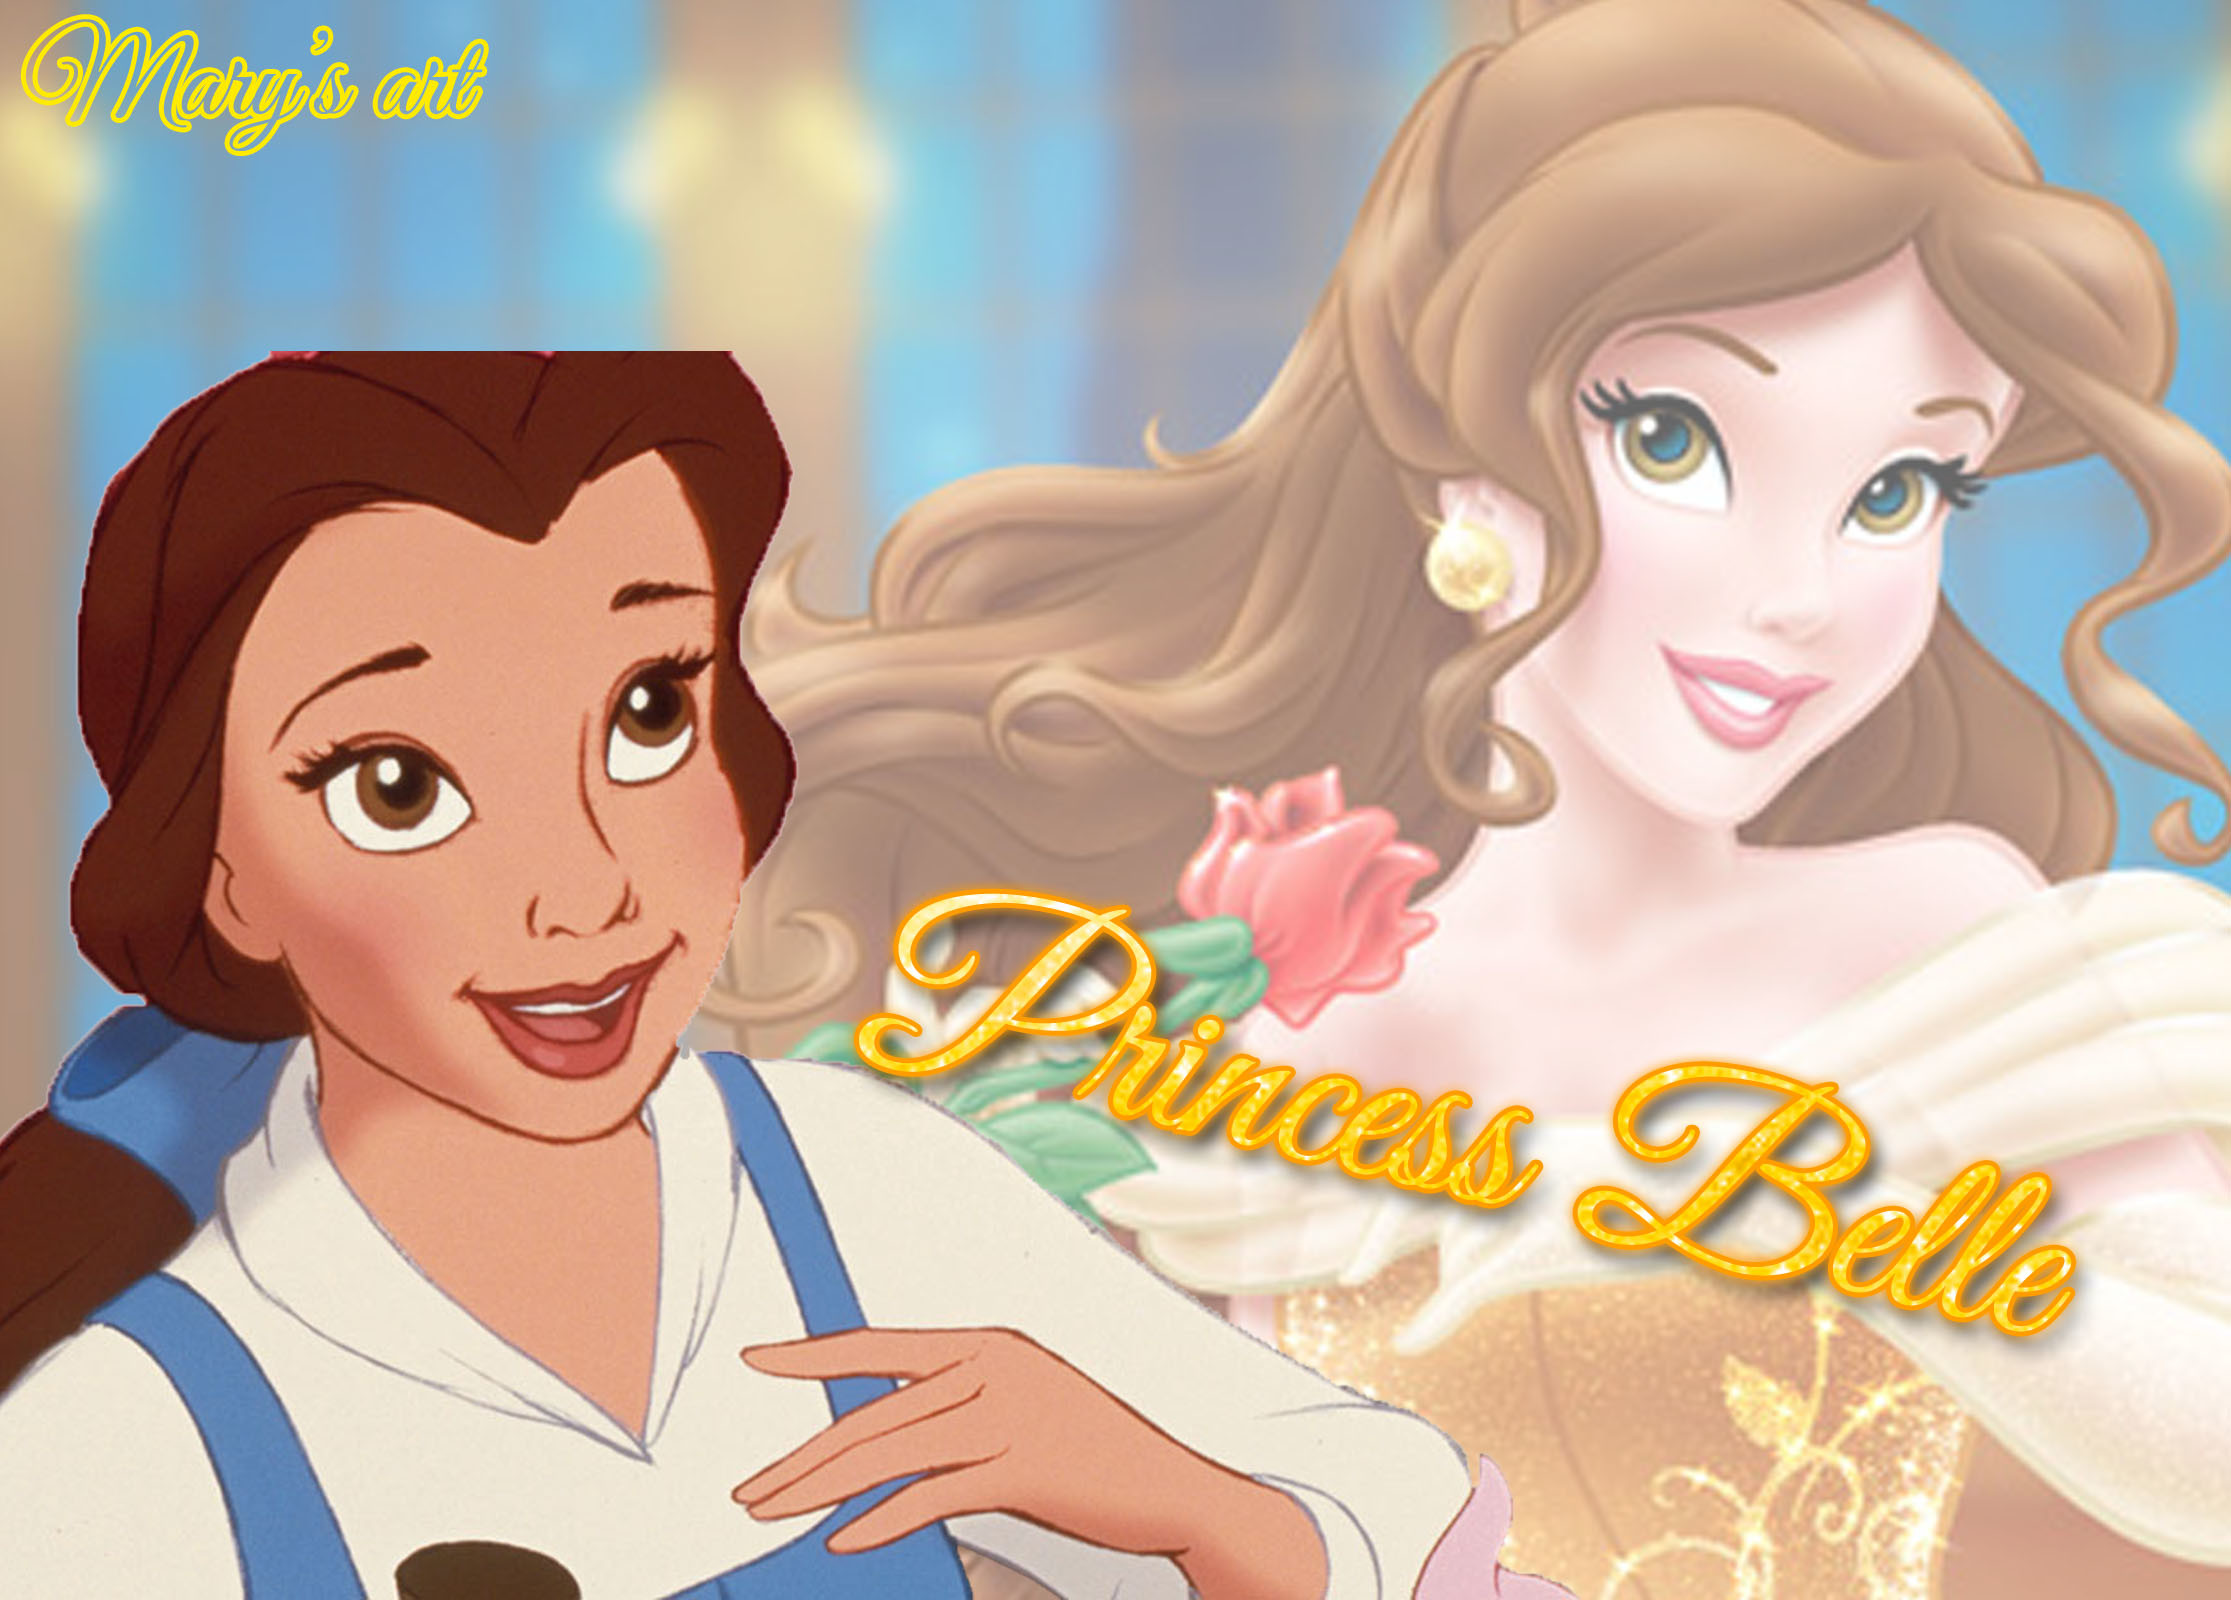 Res: 2231x1600, Princess Belle Wallpaper by marylovebloom Princess Belle Wallpaper by  marylovebloom